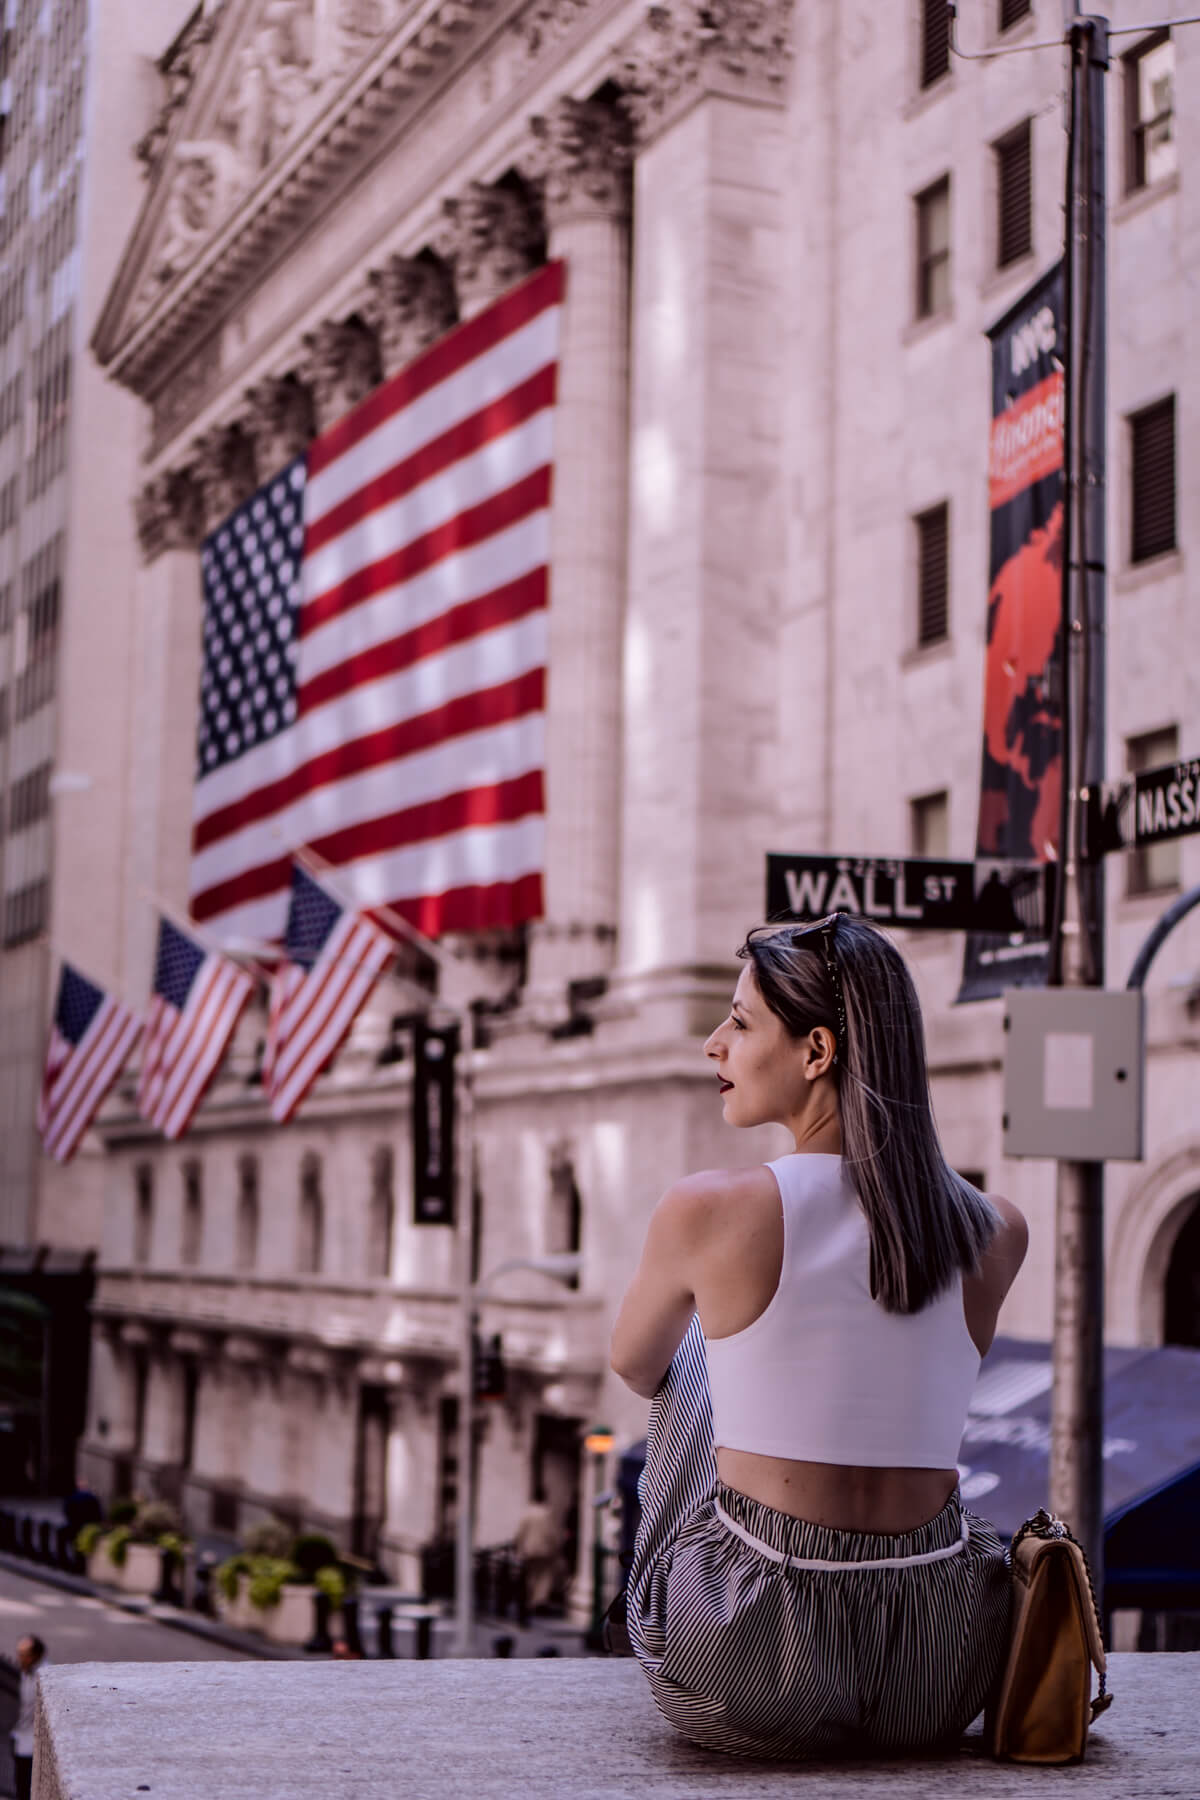 Wall Street Best View NYC The Cosmopolitas